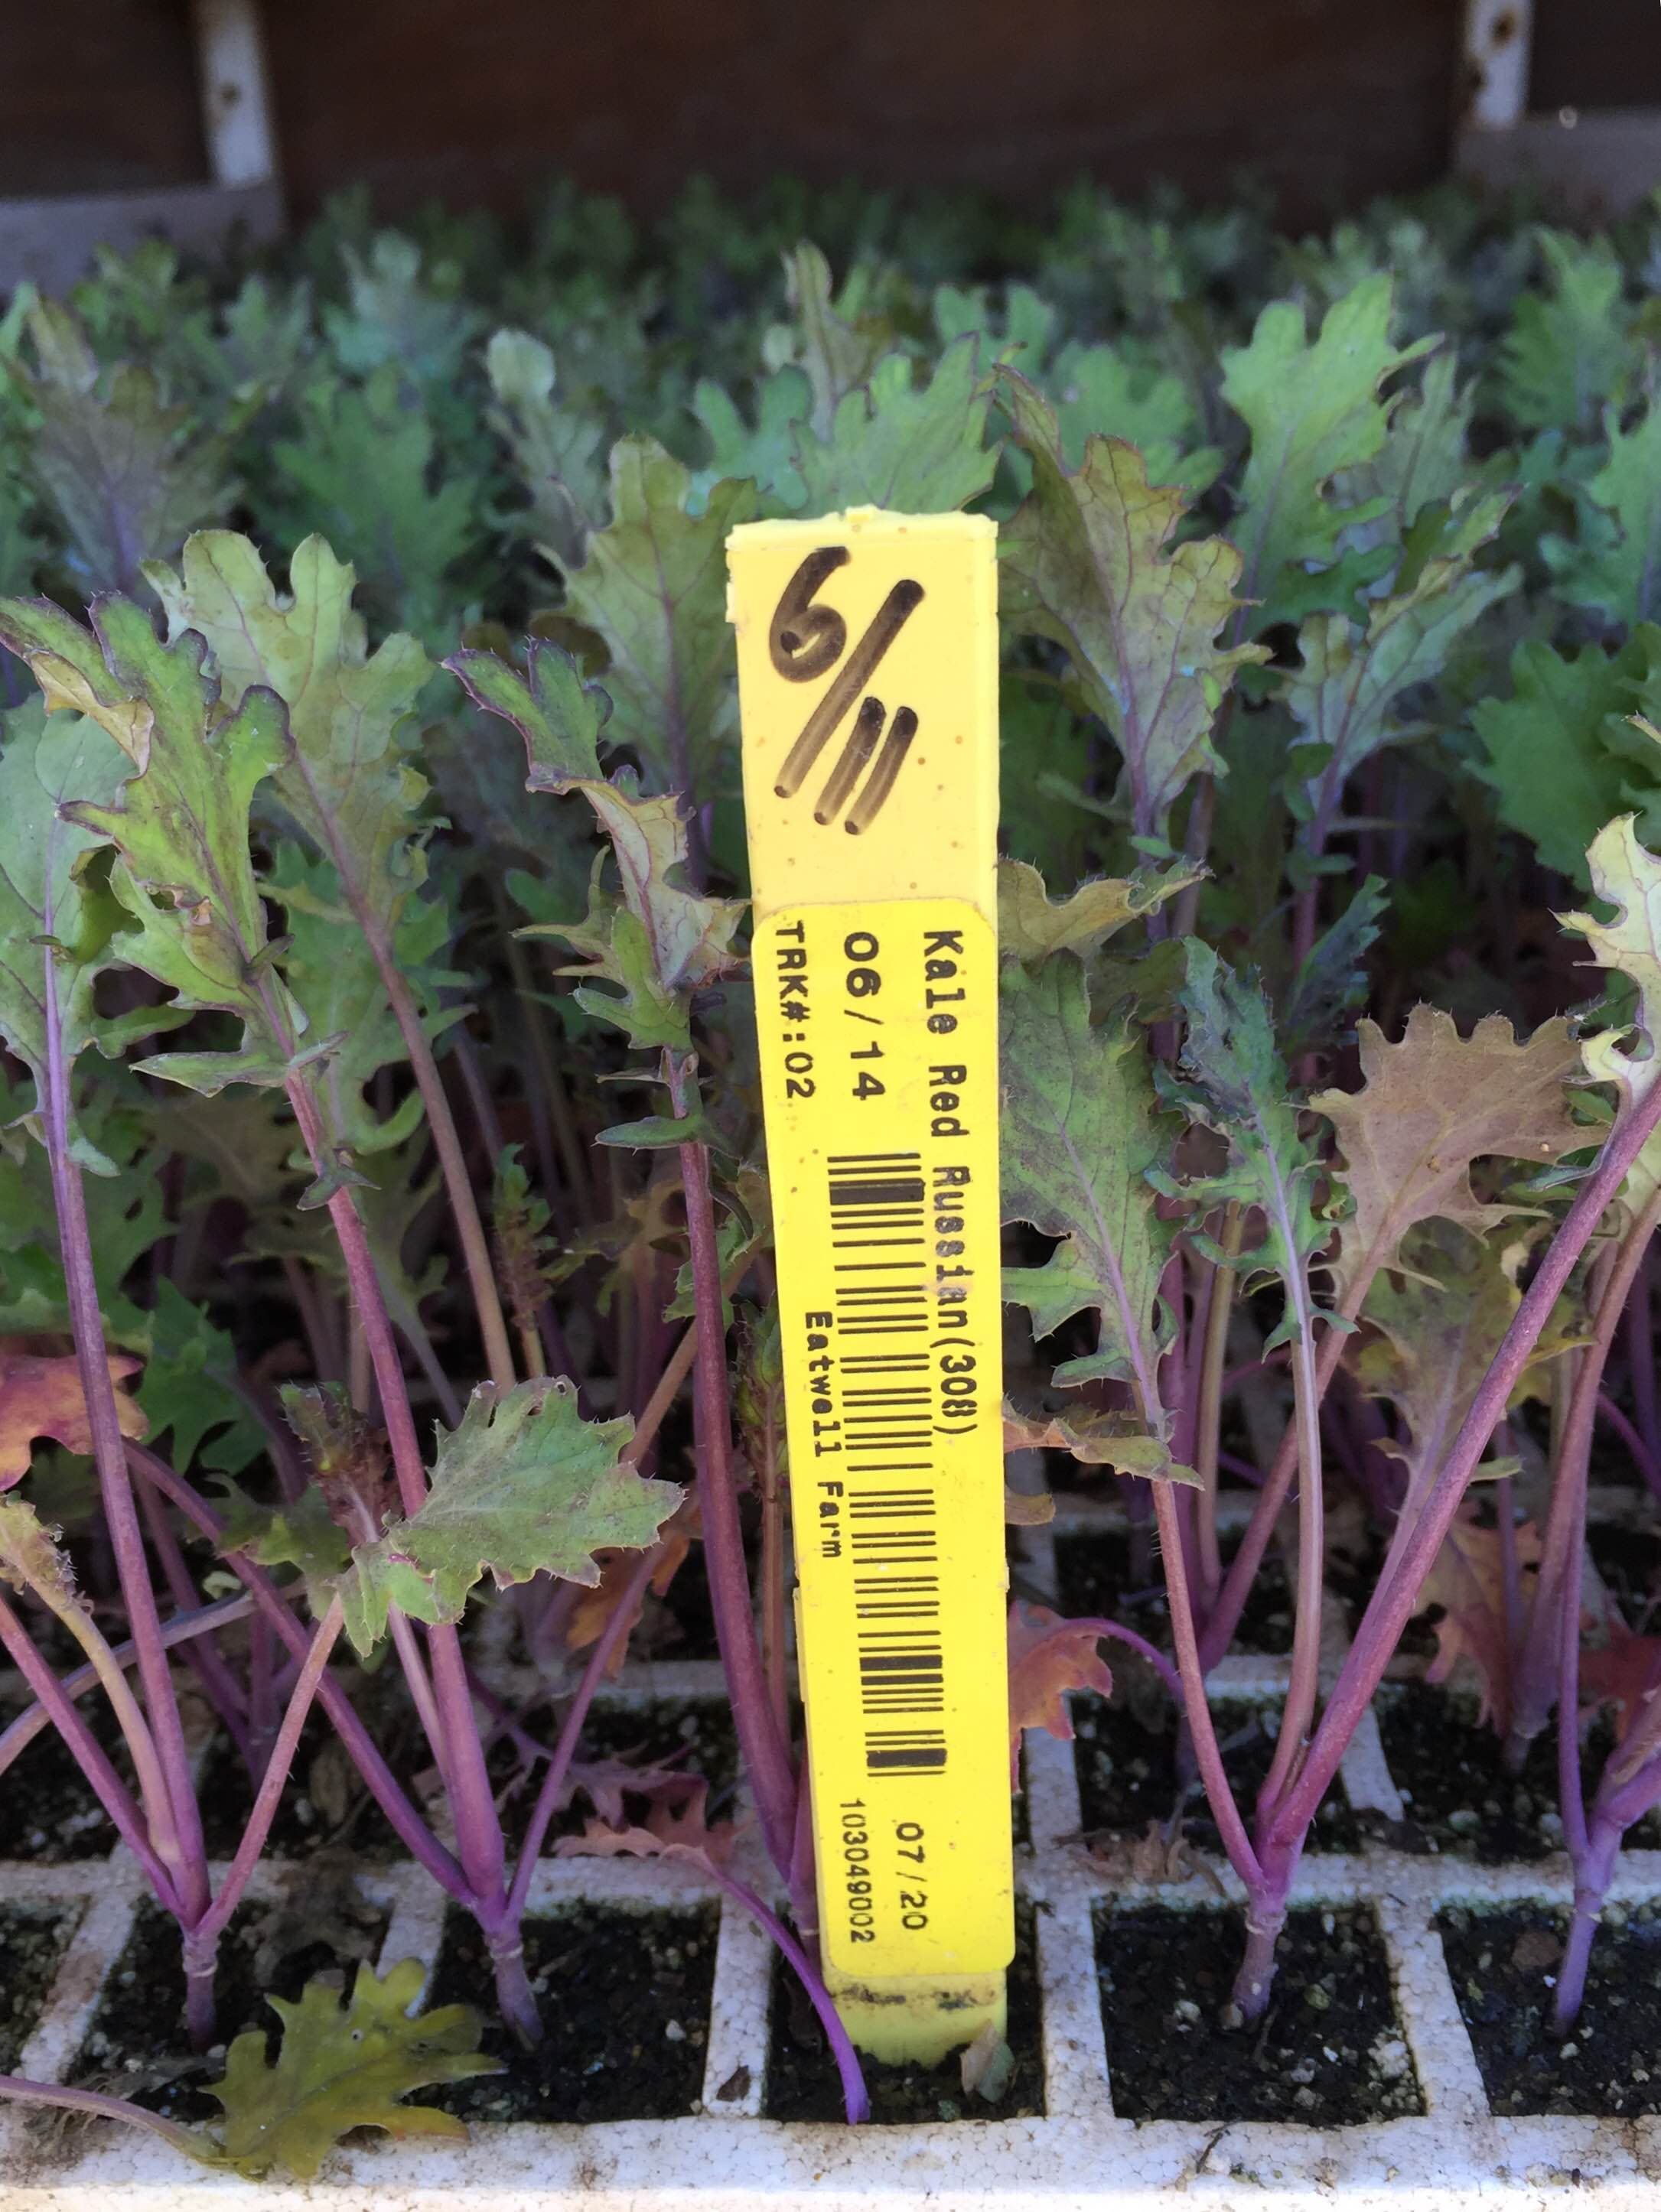 Red Russian kale transplants await planting later in the week.